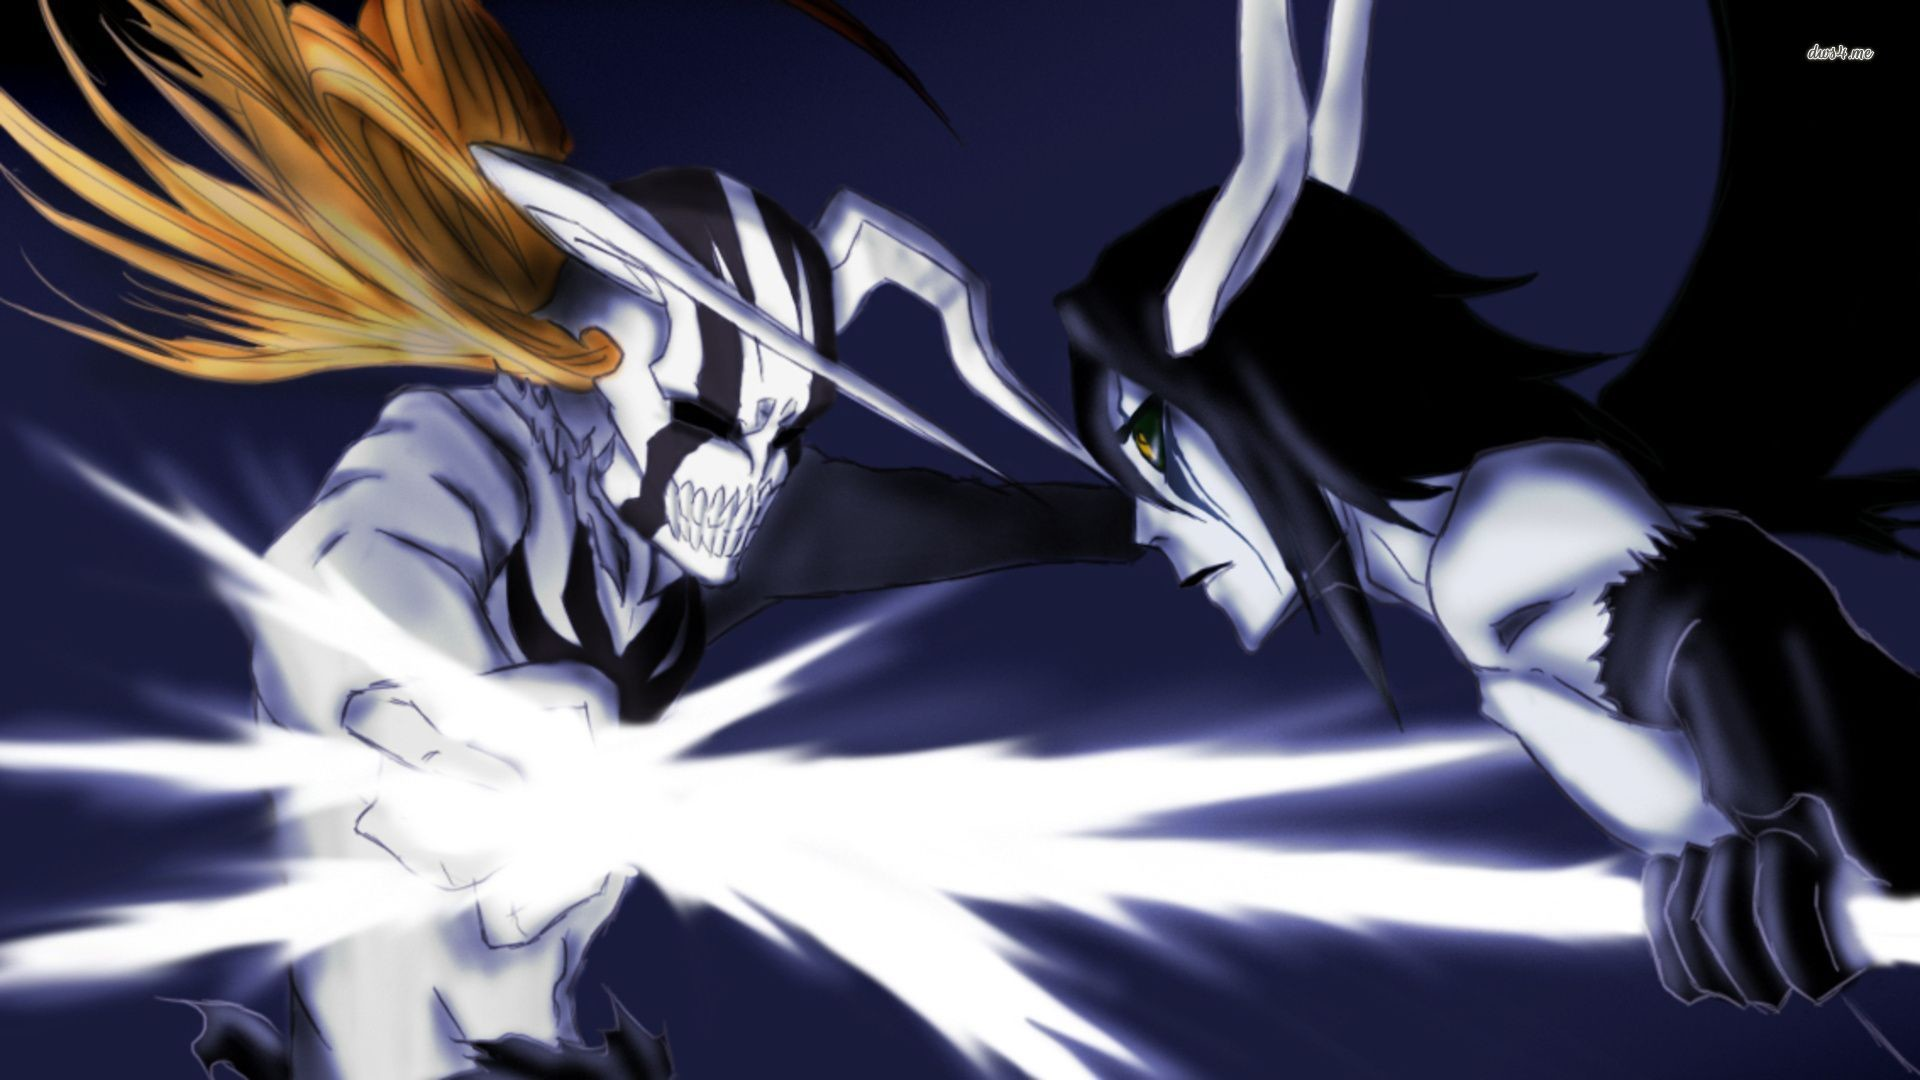 Res: 1920x1080, ... Ulquiorra Cifer vs Hollow Ichigo - Bleach wallpaper  ...